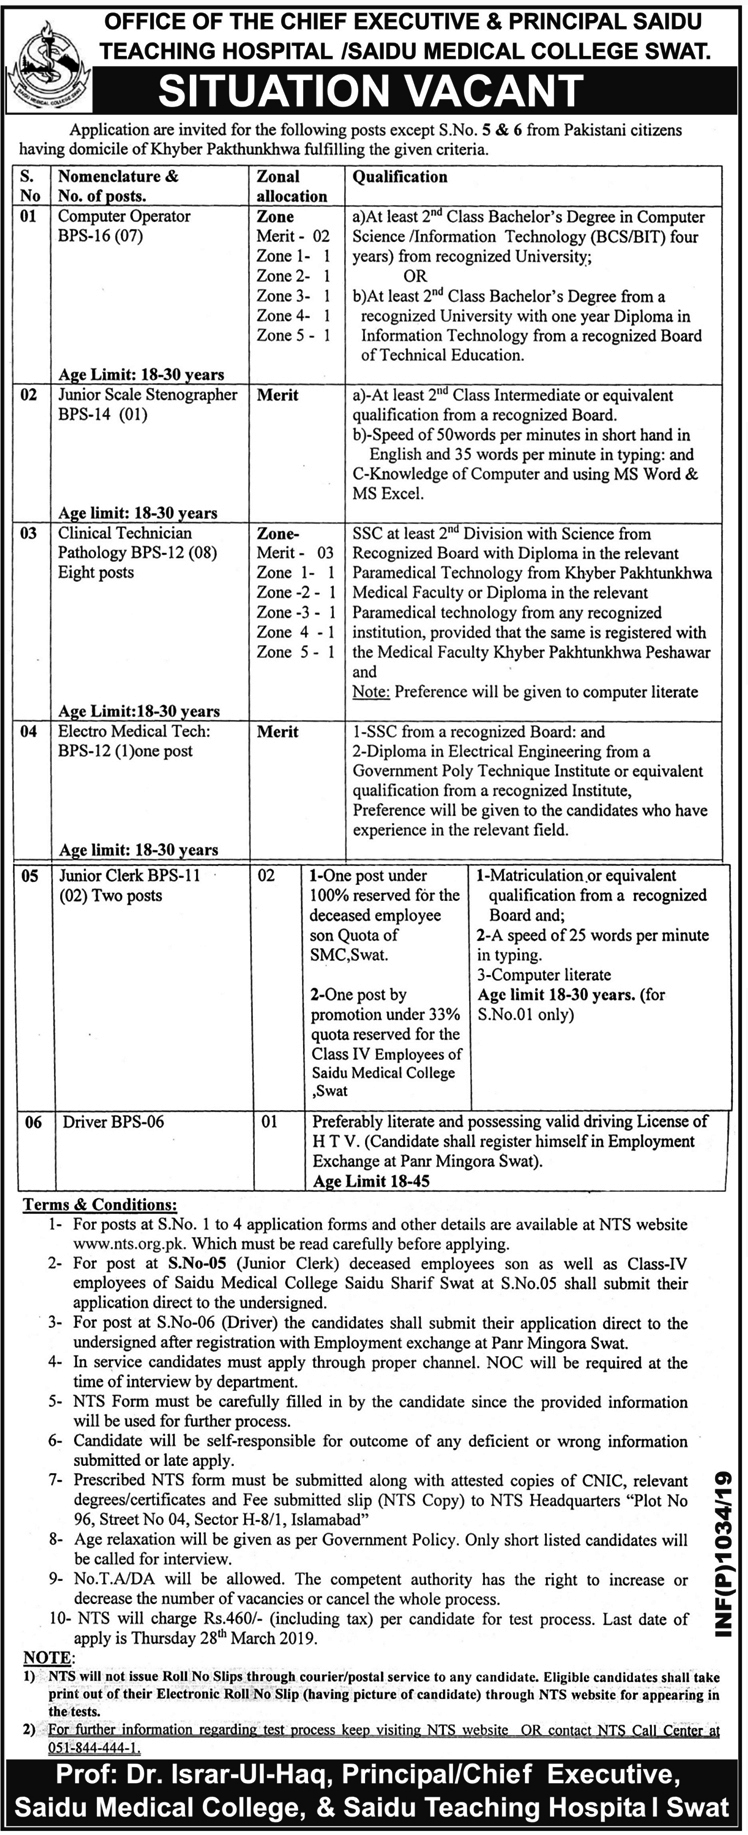 Saidu Medical College Swat Jobs 2019 NTS Application Form Download